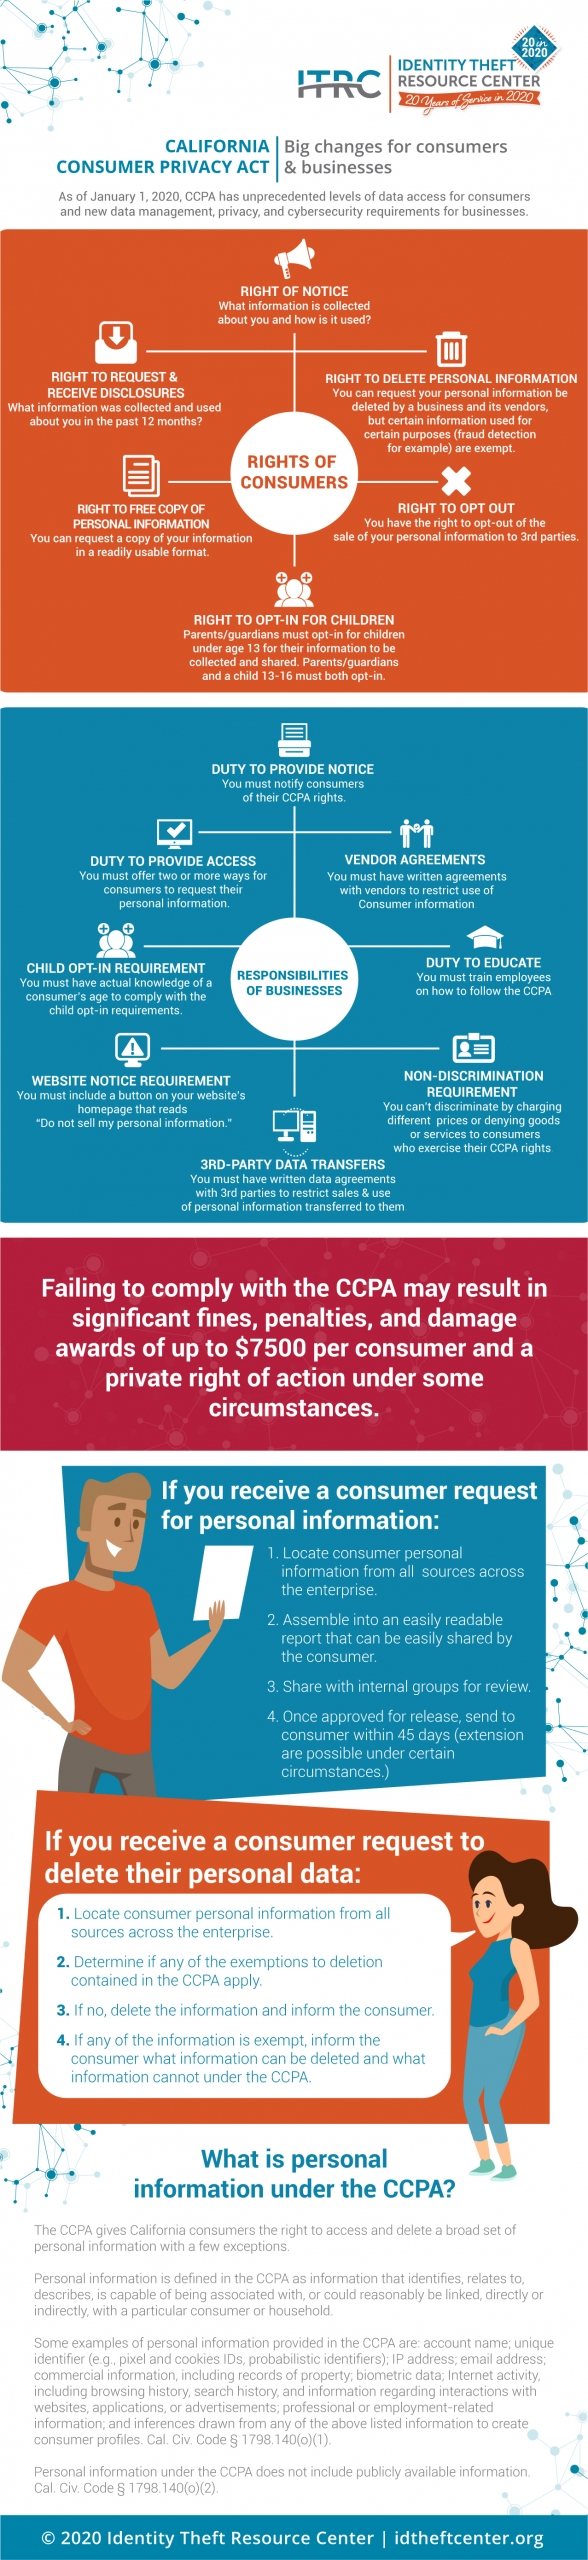 CCPA means big changes for consumers and business